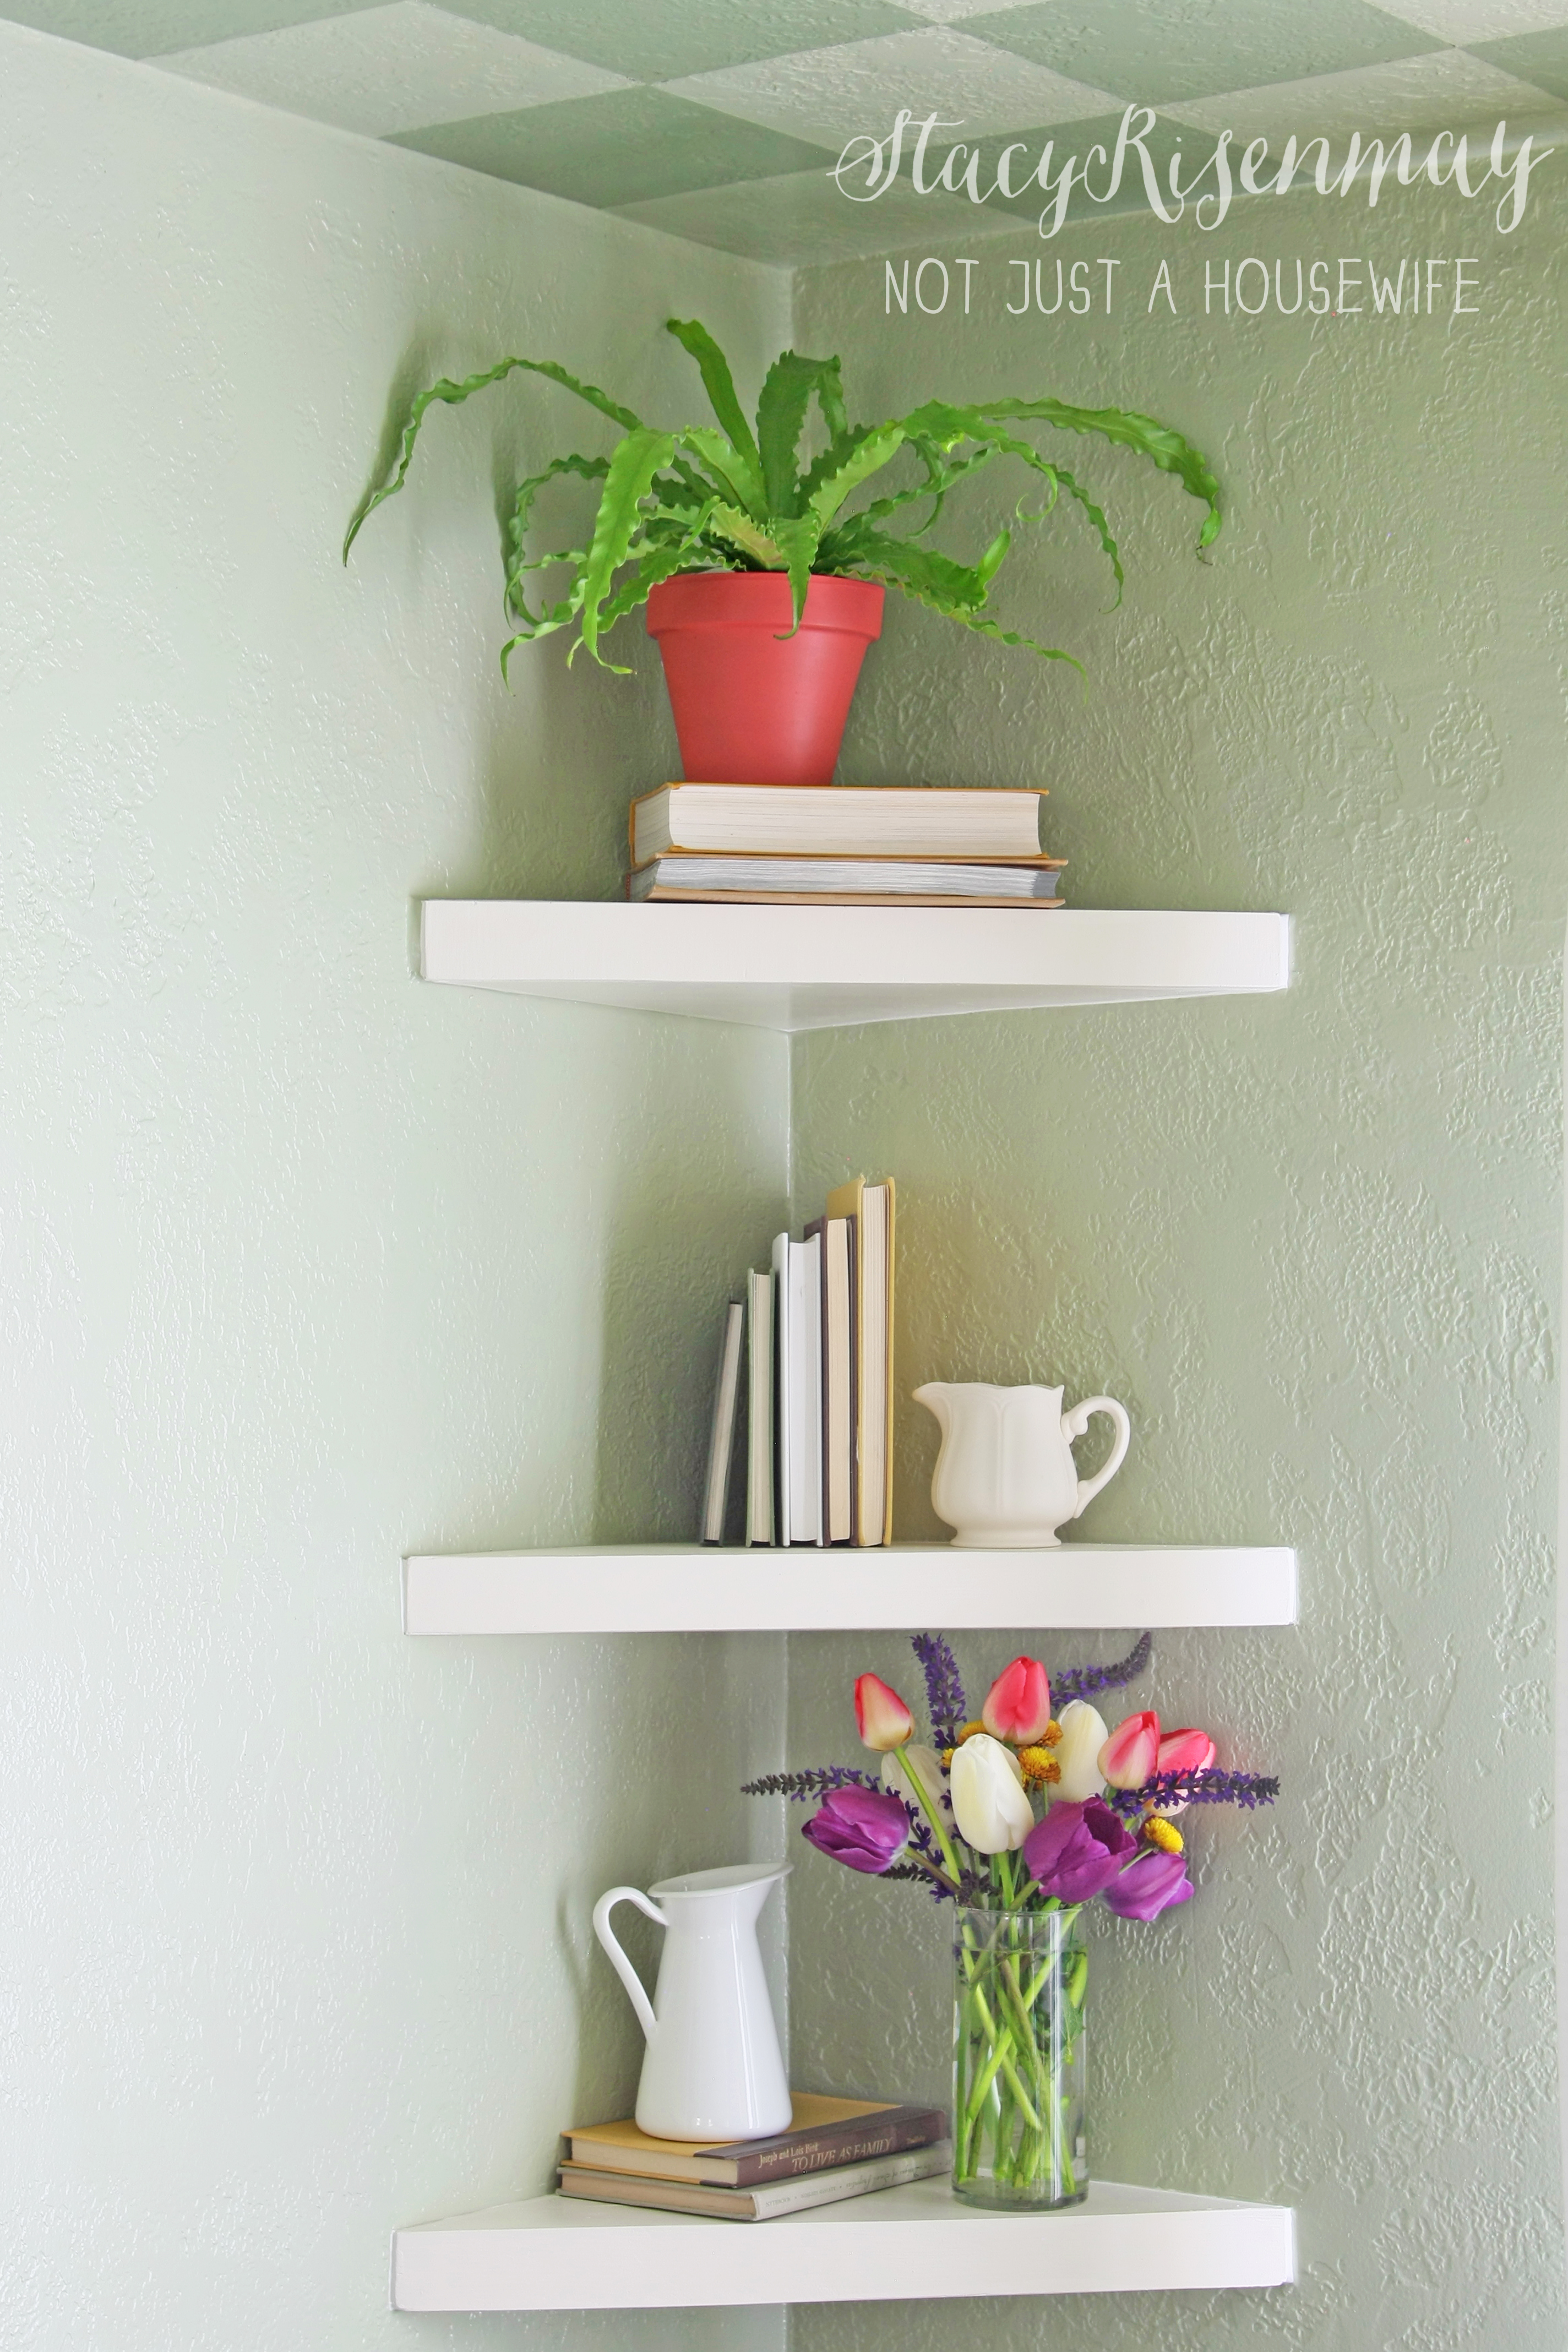 Floating Corner Shelves Not Just A Housewife